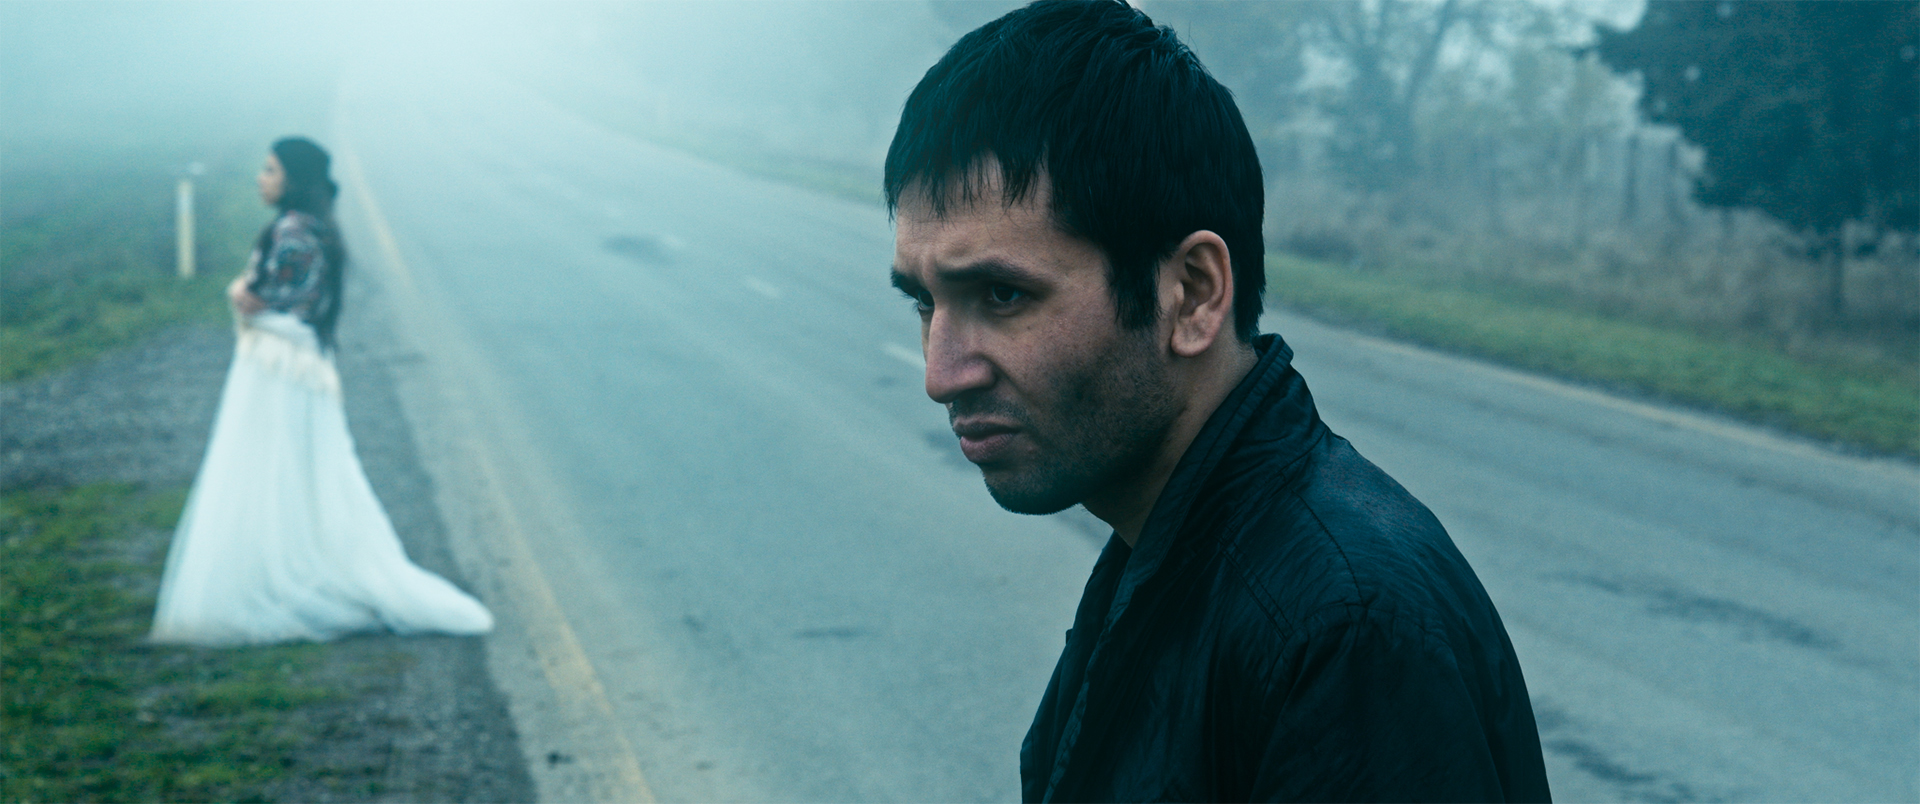 Venice Dispatch - In Between Dying - Awardsdaily - The Oscars, the Films  and everything in between.